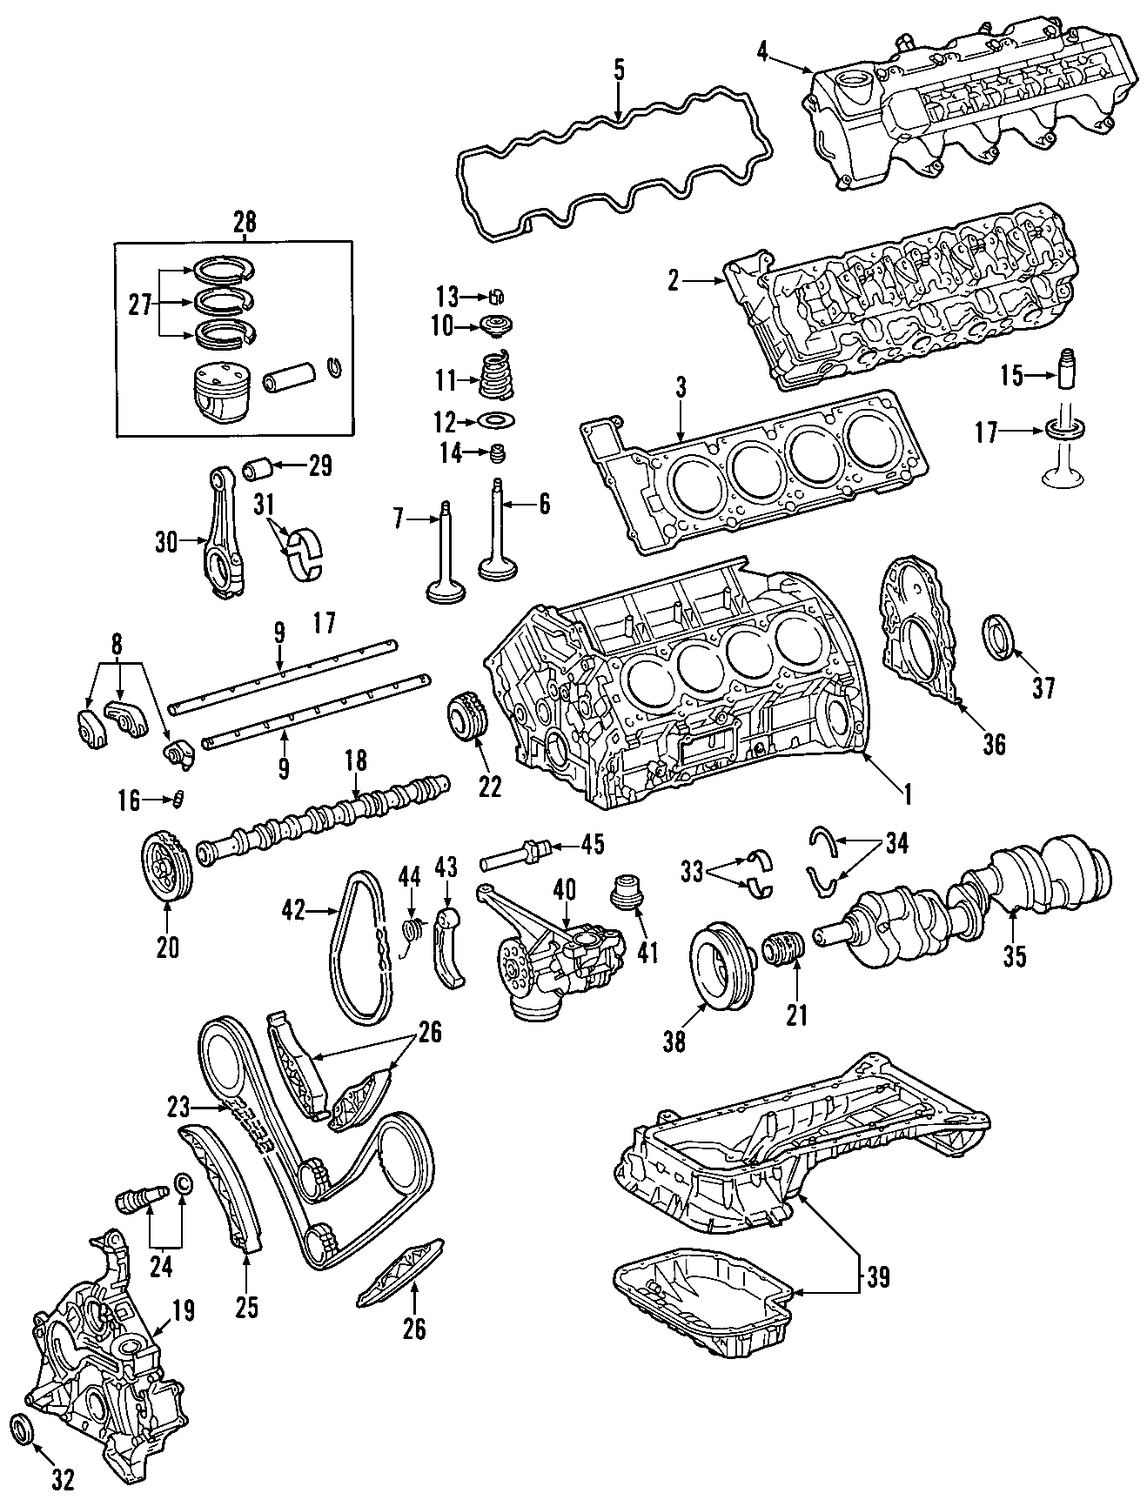 mercedes c230 parts diagram wiring schematic diagram1999 mercedes benz  ml320 engine diagram best wiring library diagram